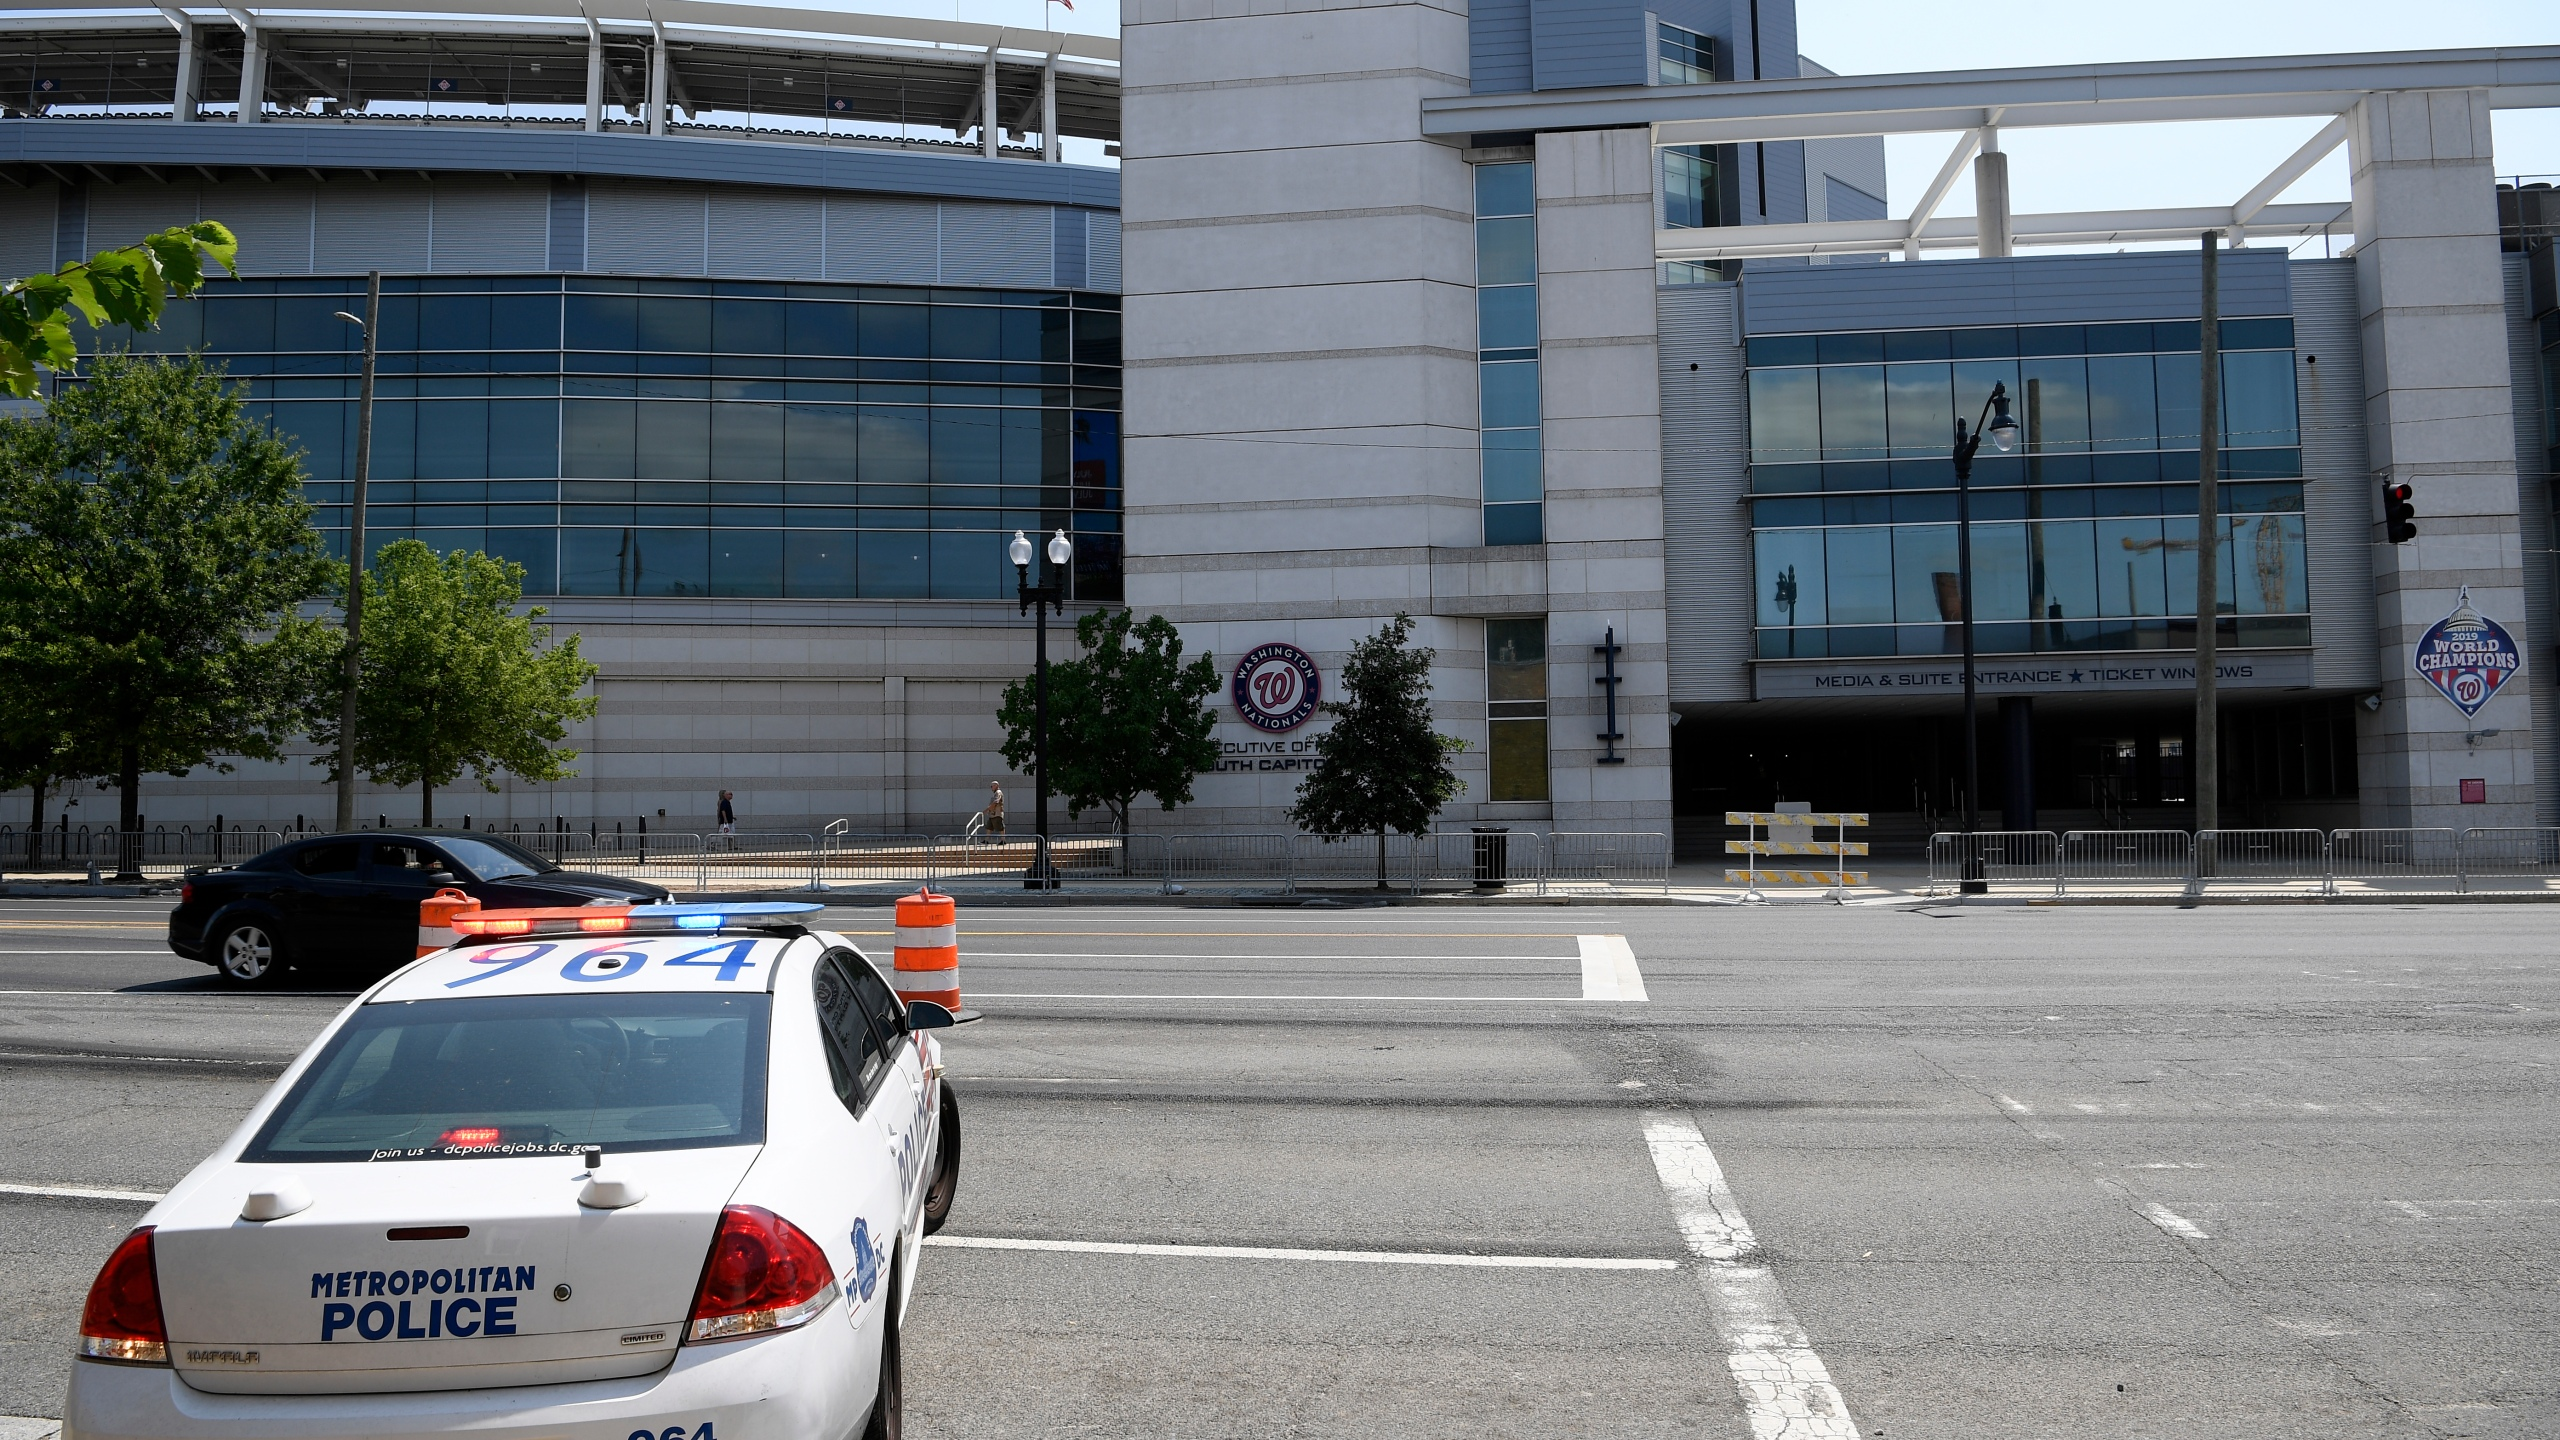 A police car is seen across from Nationals Park, Sunday, July 18, 2021, in Washington. (AP Photo/Nick Wass)